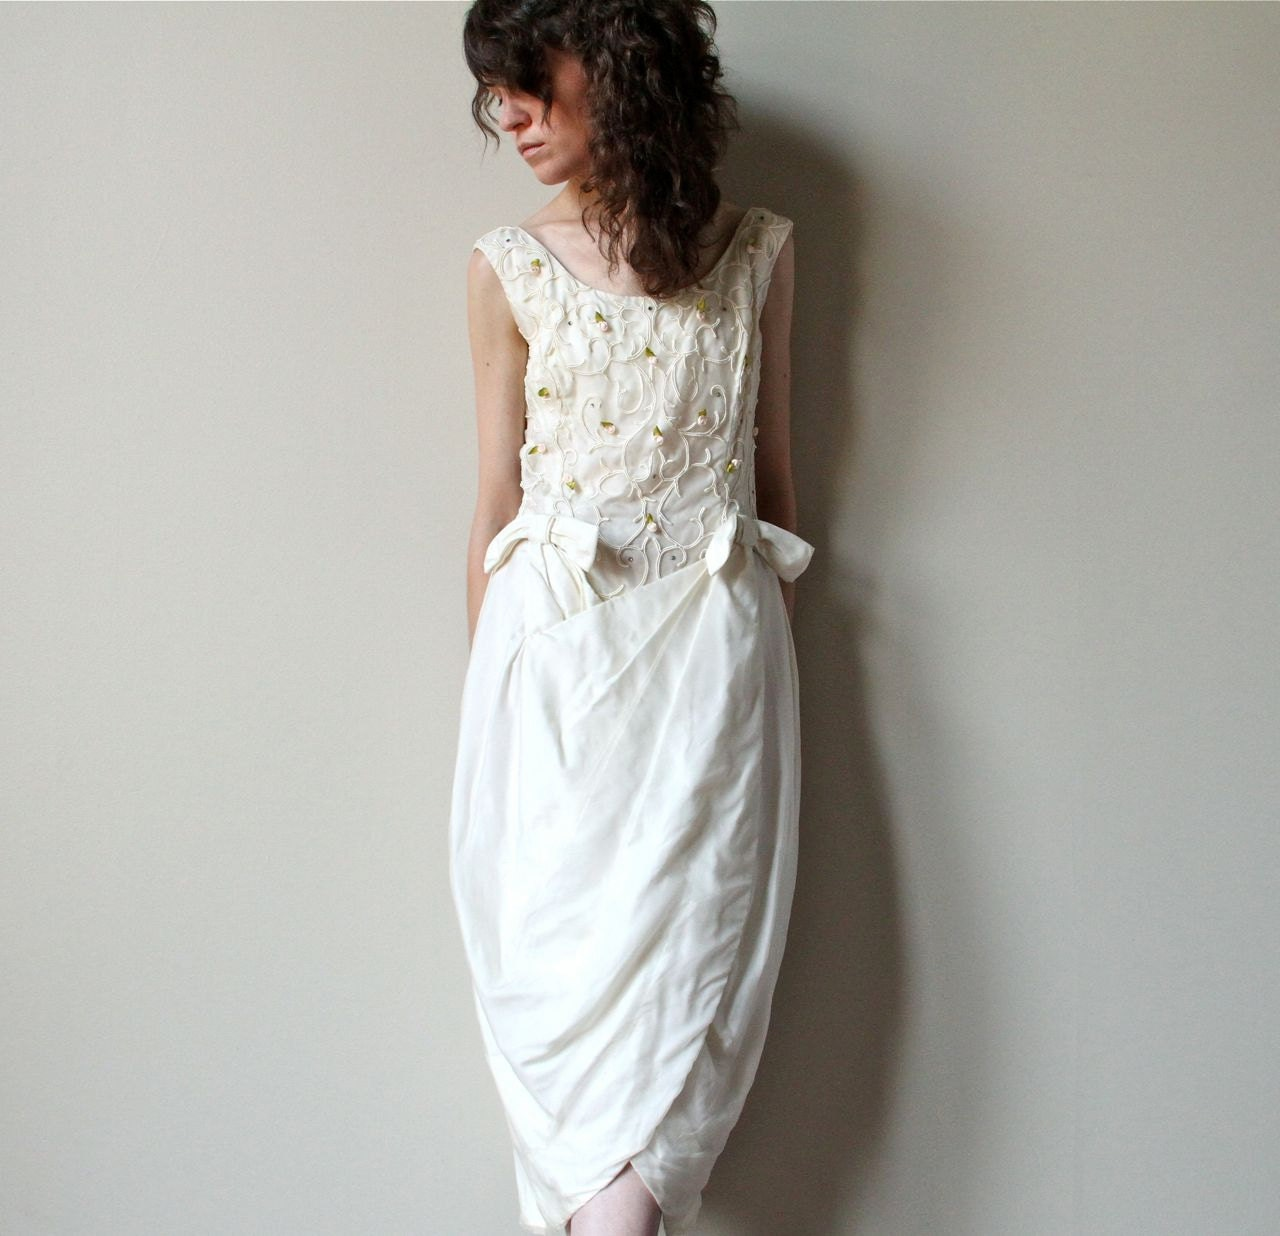 60s mod wedding dress avant garde wiggle fit by for 60s style wedding dresses